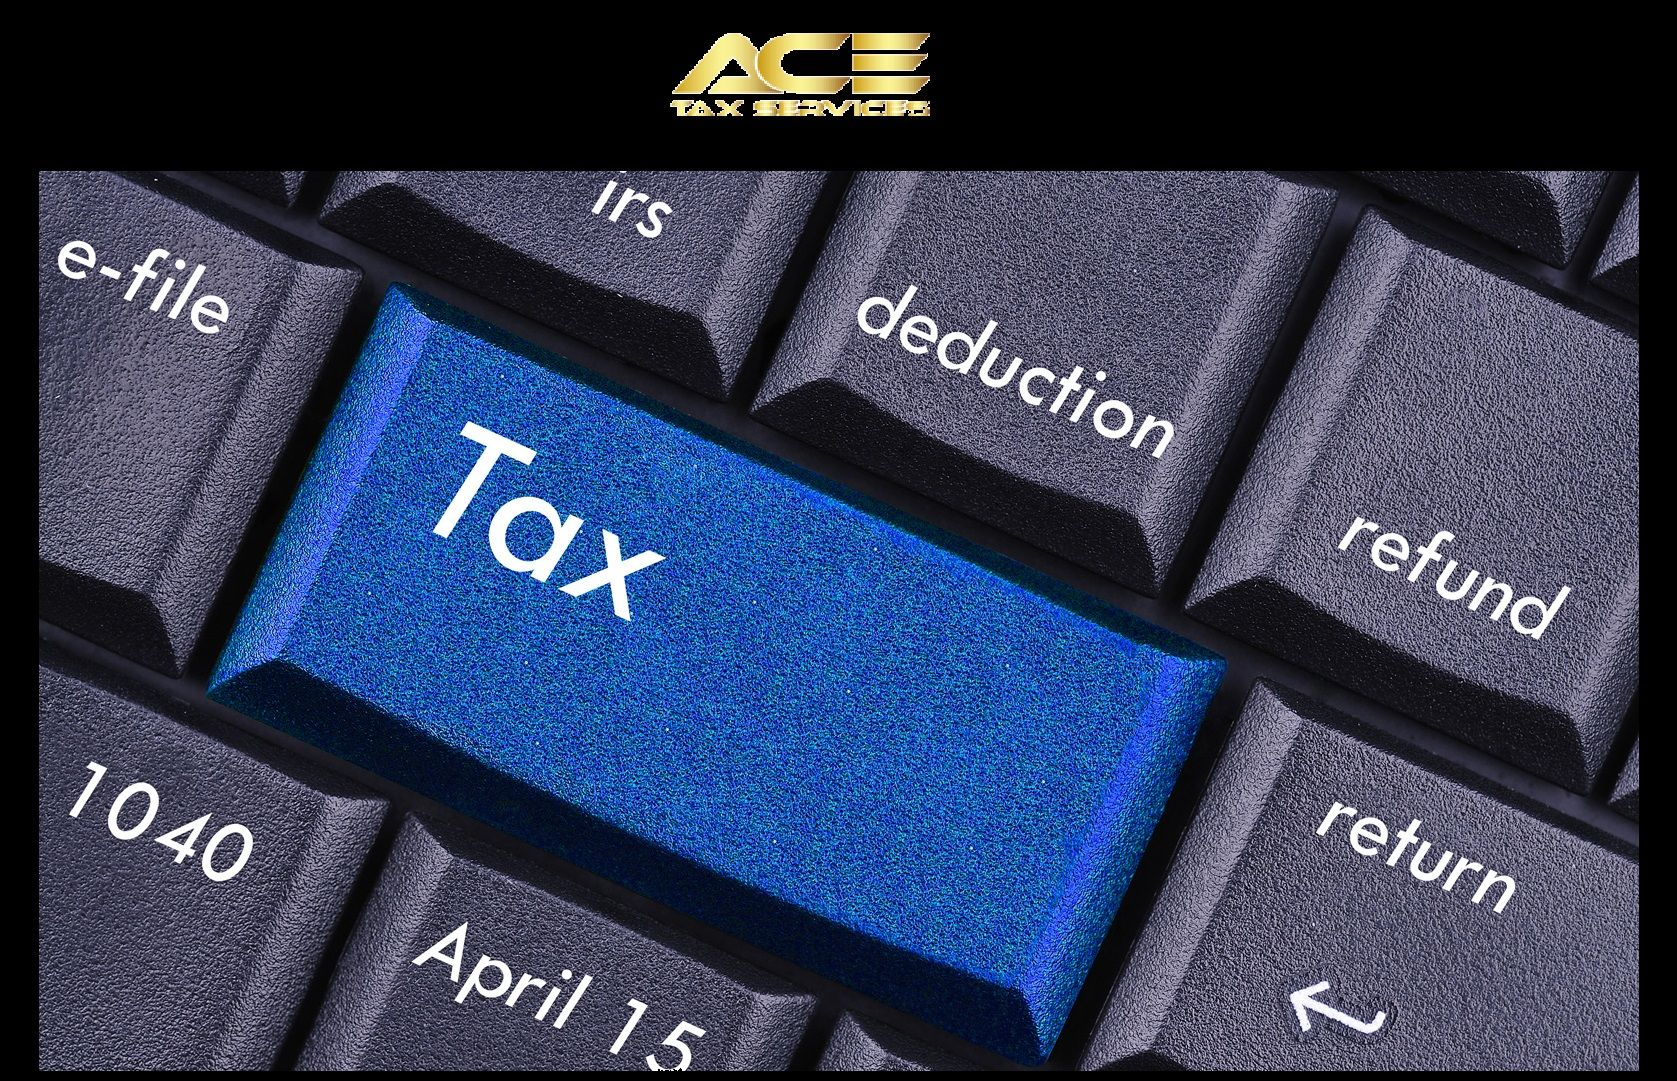 Ace Tax Services Provide Best Kind Of Income Tax Preparation In Queens Ny Region S That Our Customers Can Easily Annuity This Or That Questions Tax Preparation